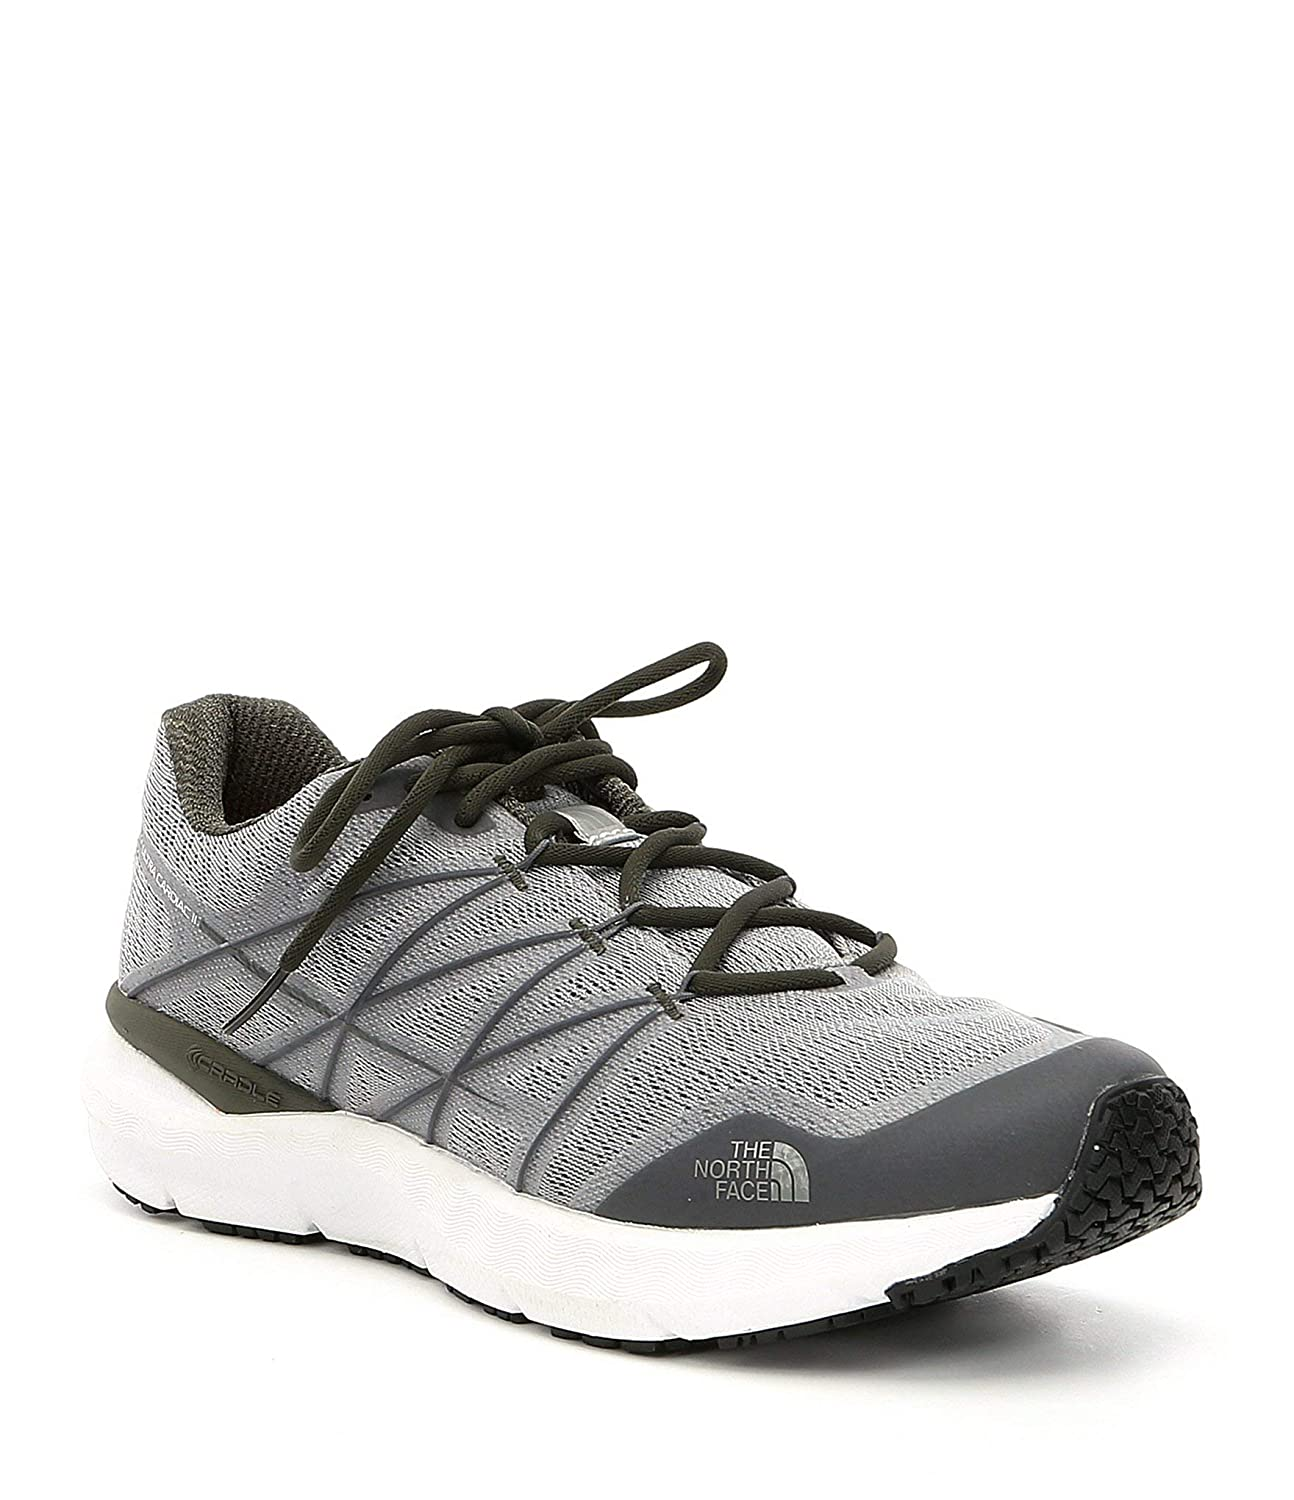 THE NORTH FACE Frauen Frauen Frauen Ultra Cadiac Low & Mid Tops Schnuersenkel Laufschuhe ec53b9